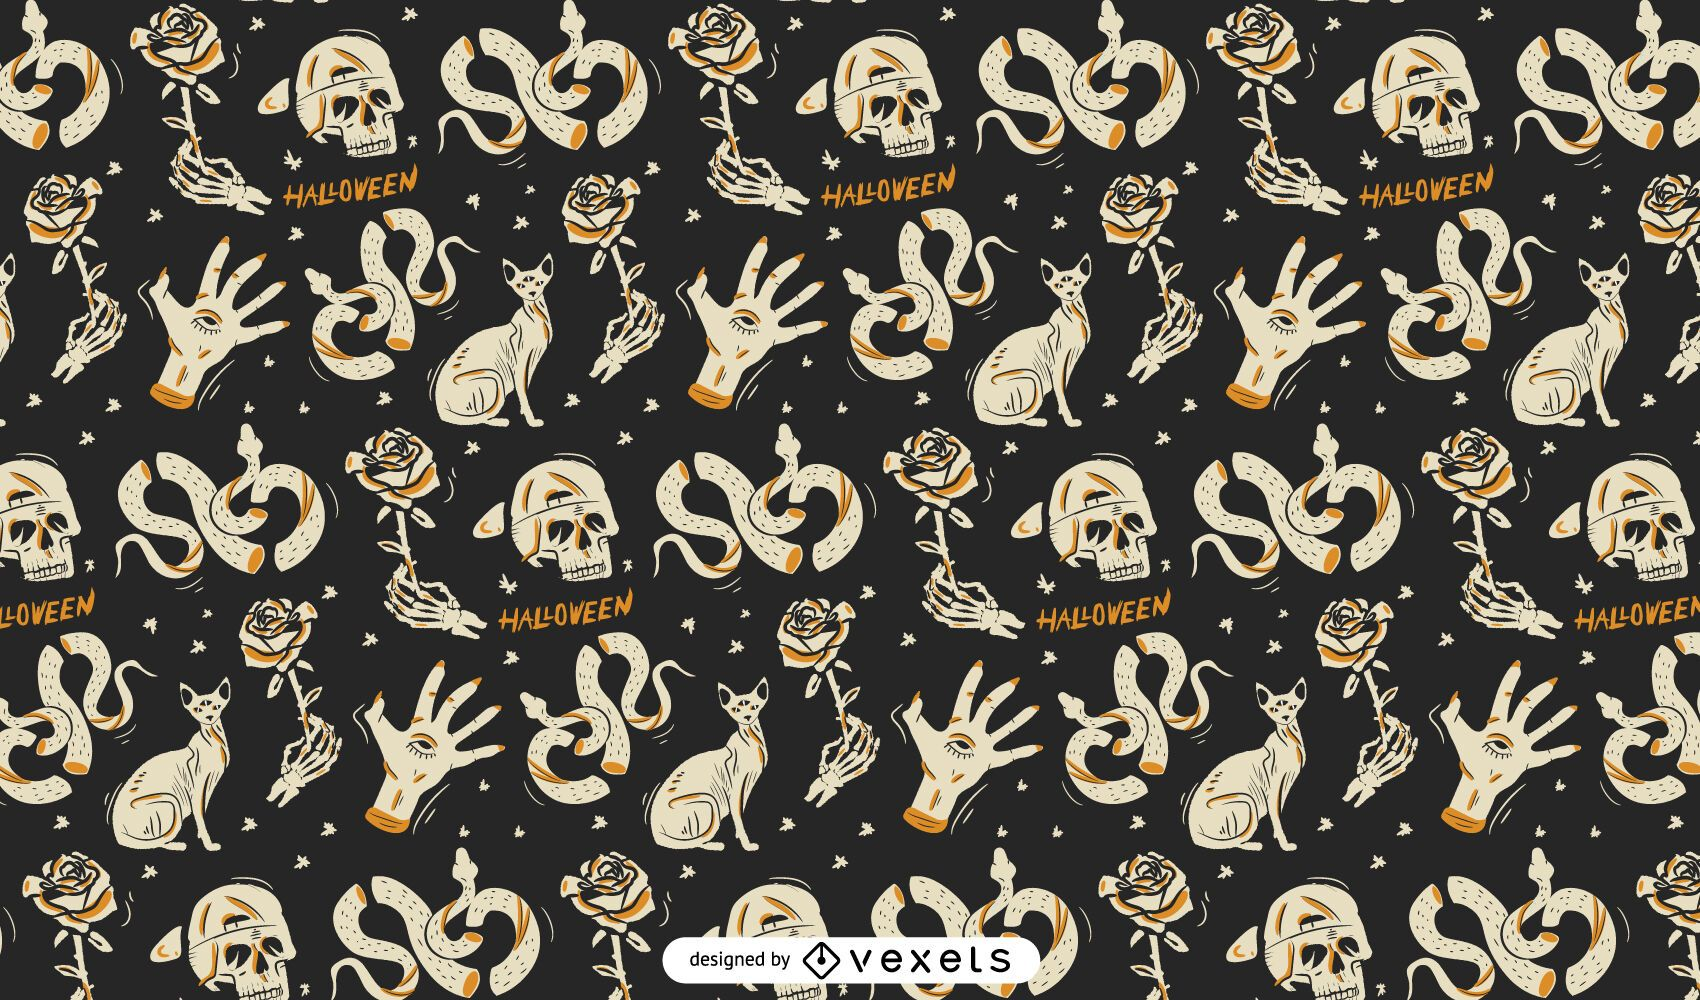 Halloween holiday scary elements pattern design